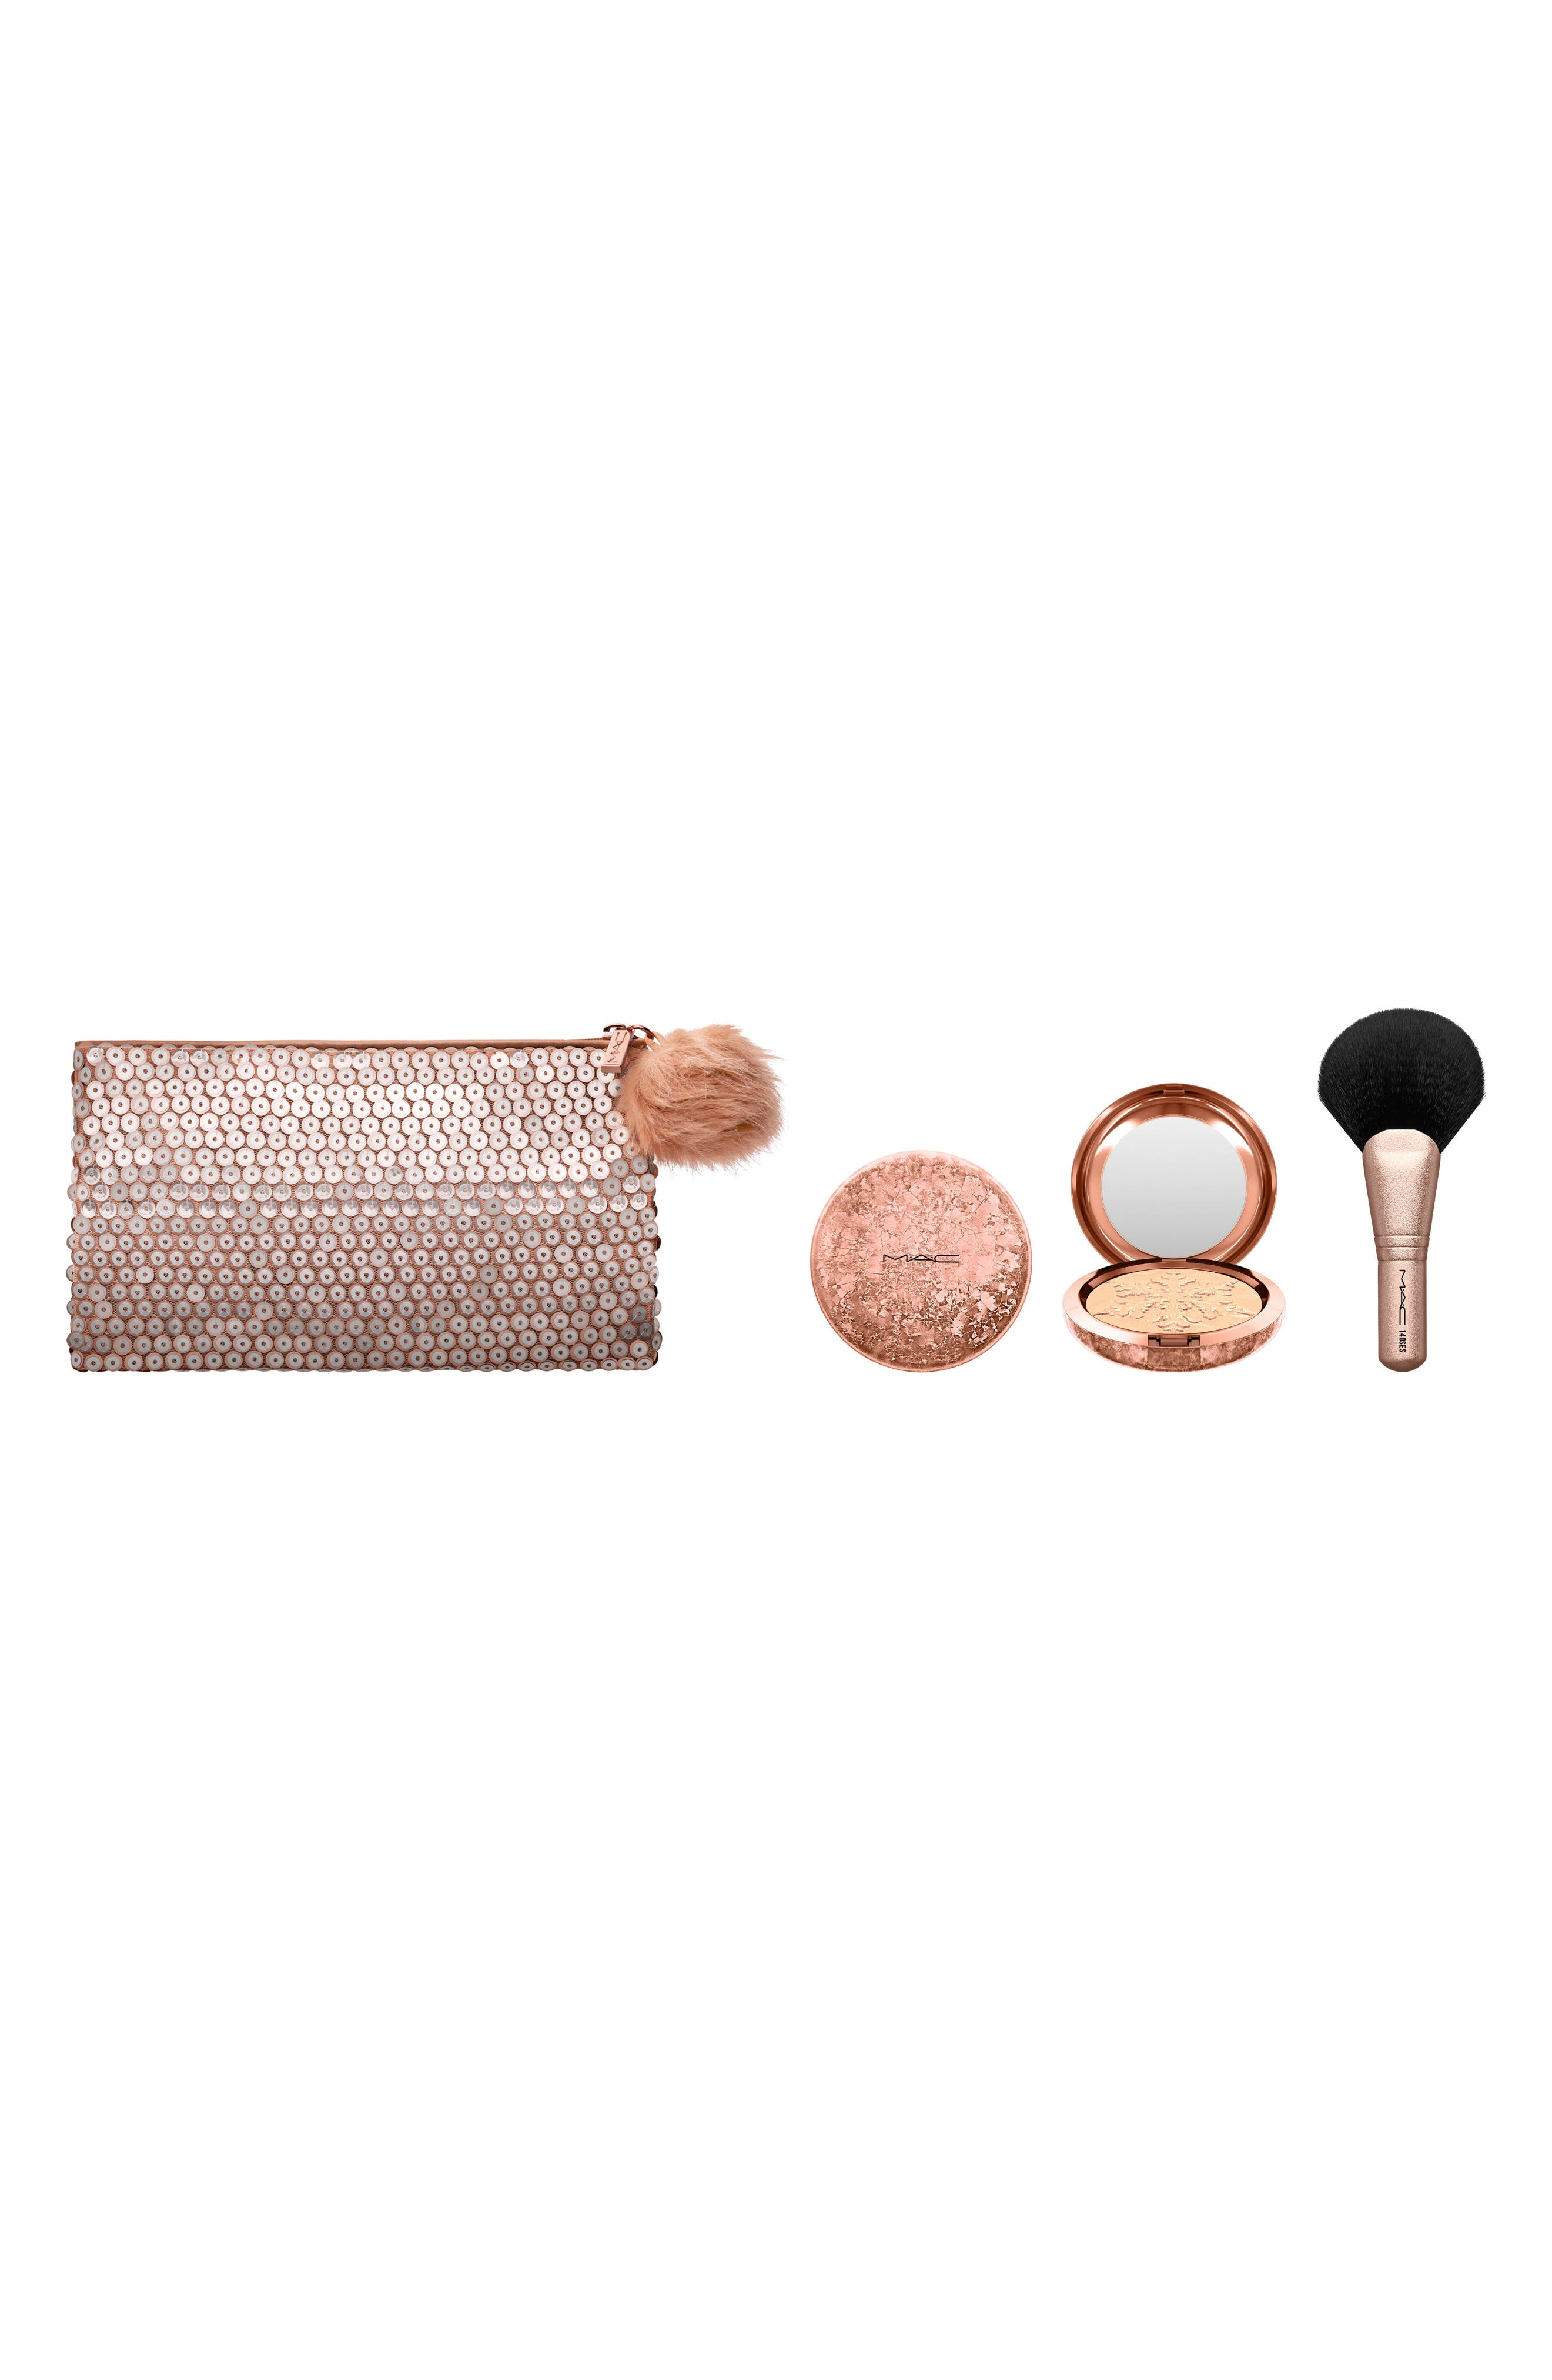 Main Image - MAC Snow Ball Peach Face Bag Collection (Nordstrom Exclusive) ($85 Value)